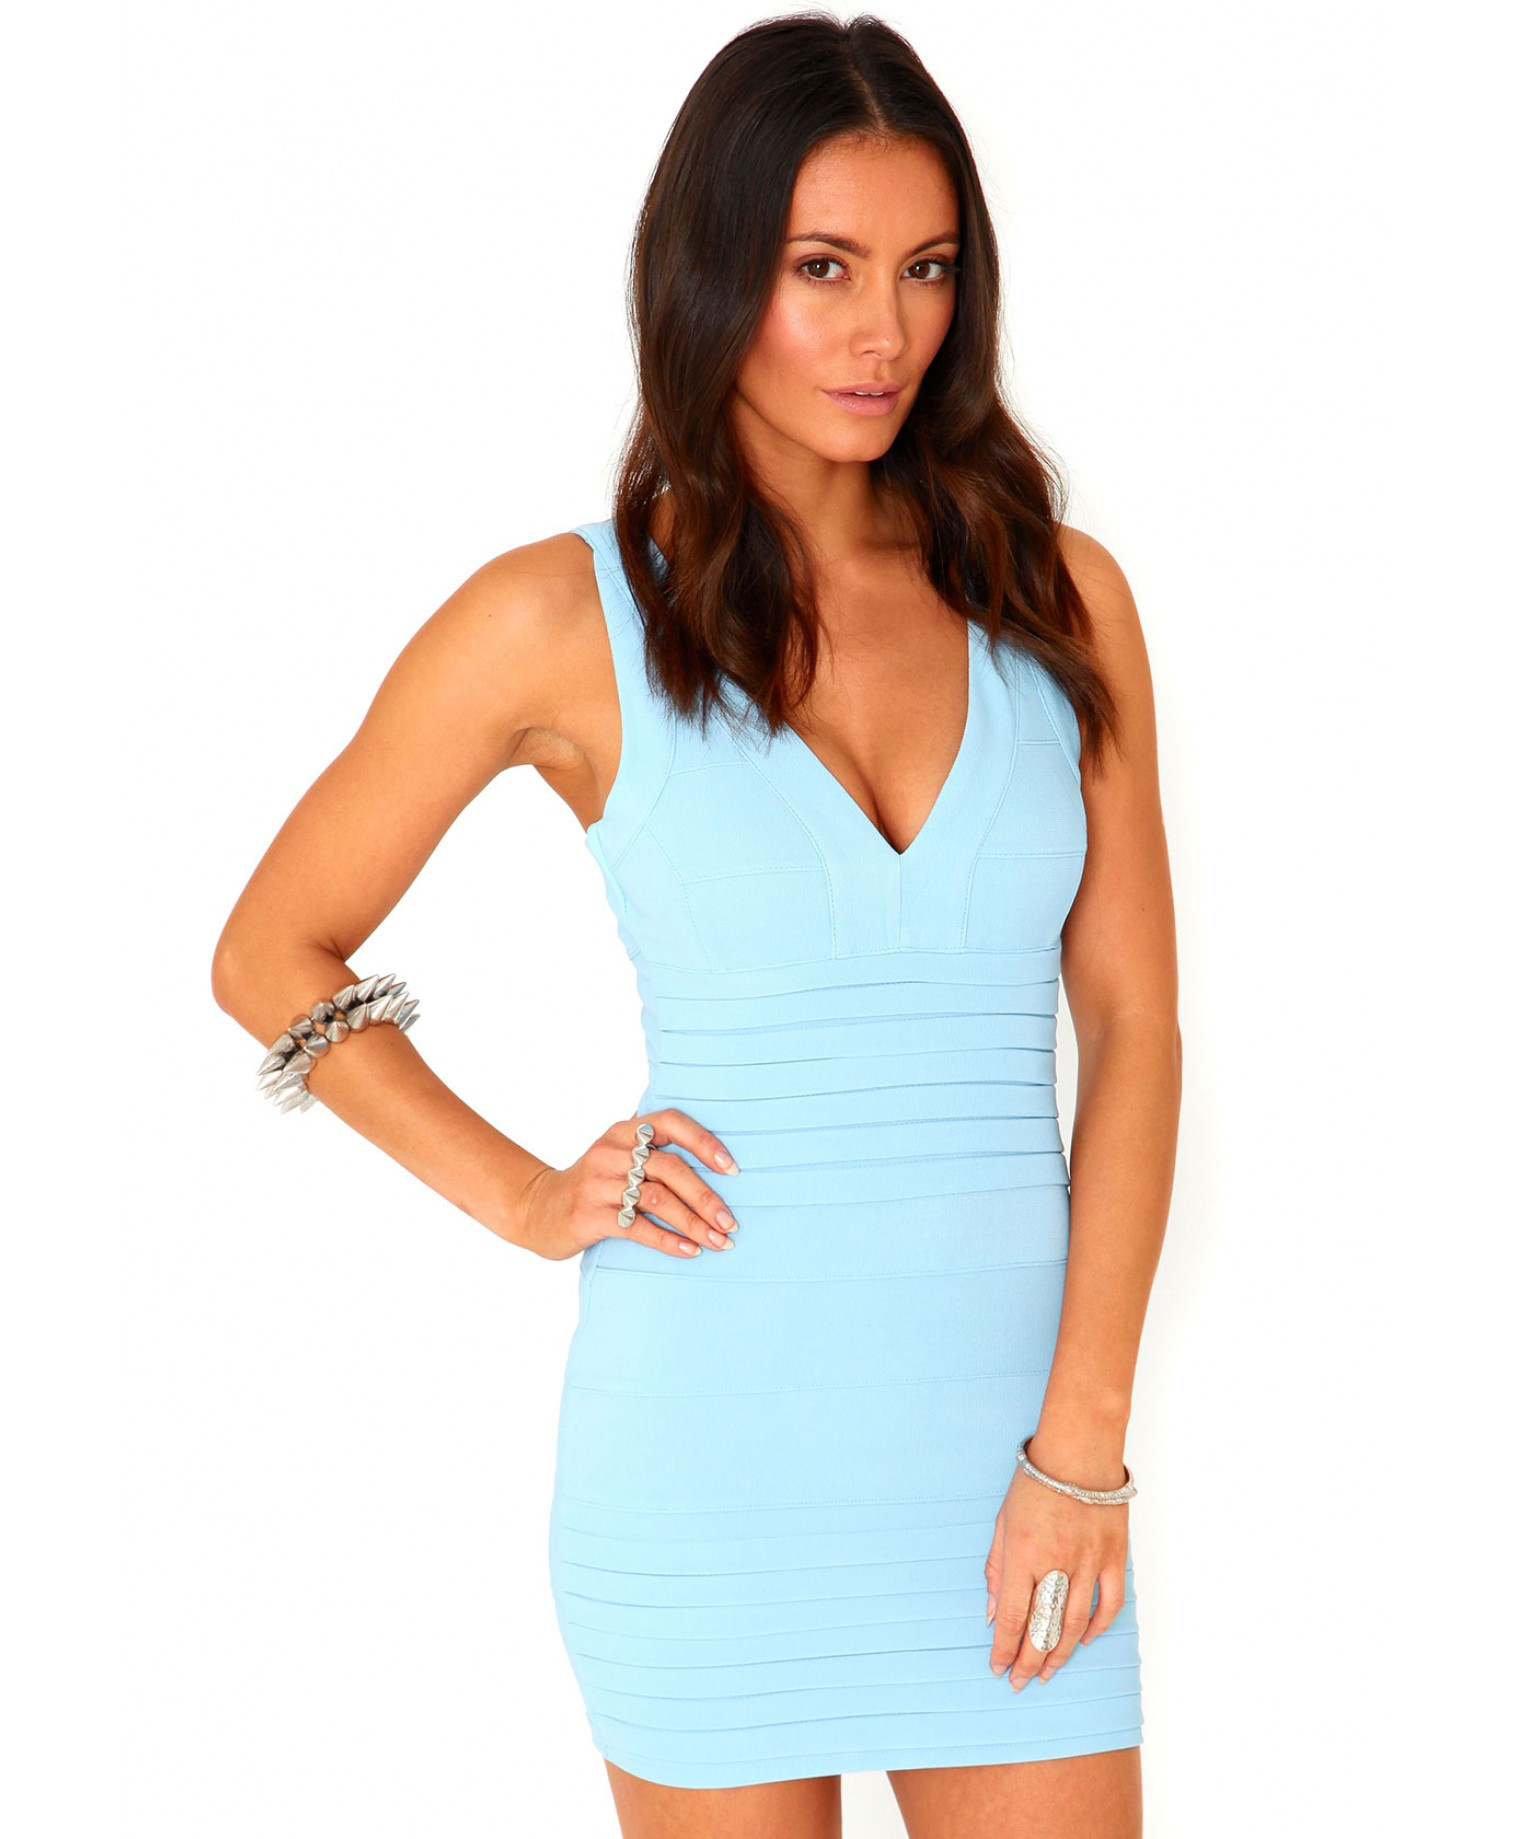 Missguided Leena Bandage Bodycon Dress In Baby Blue in